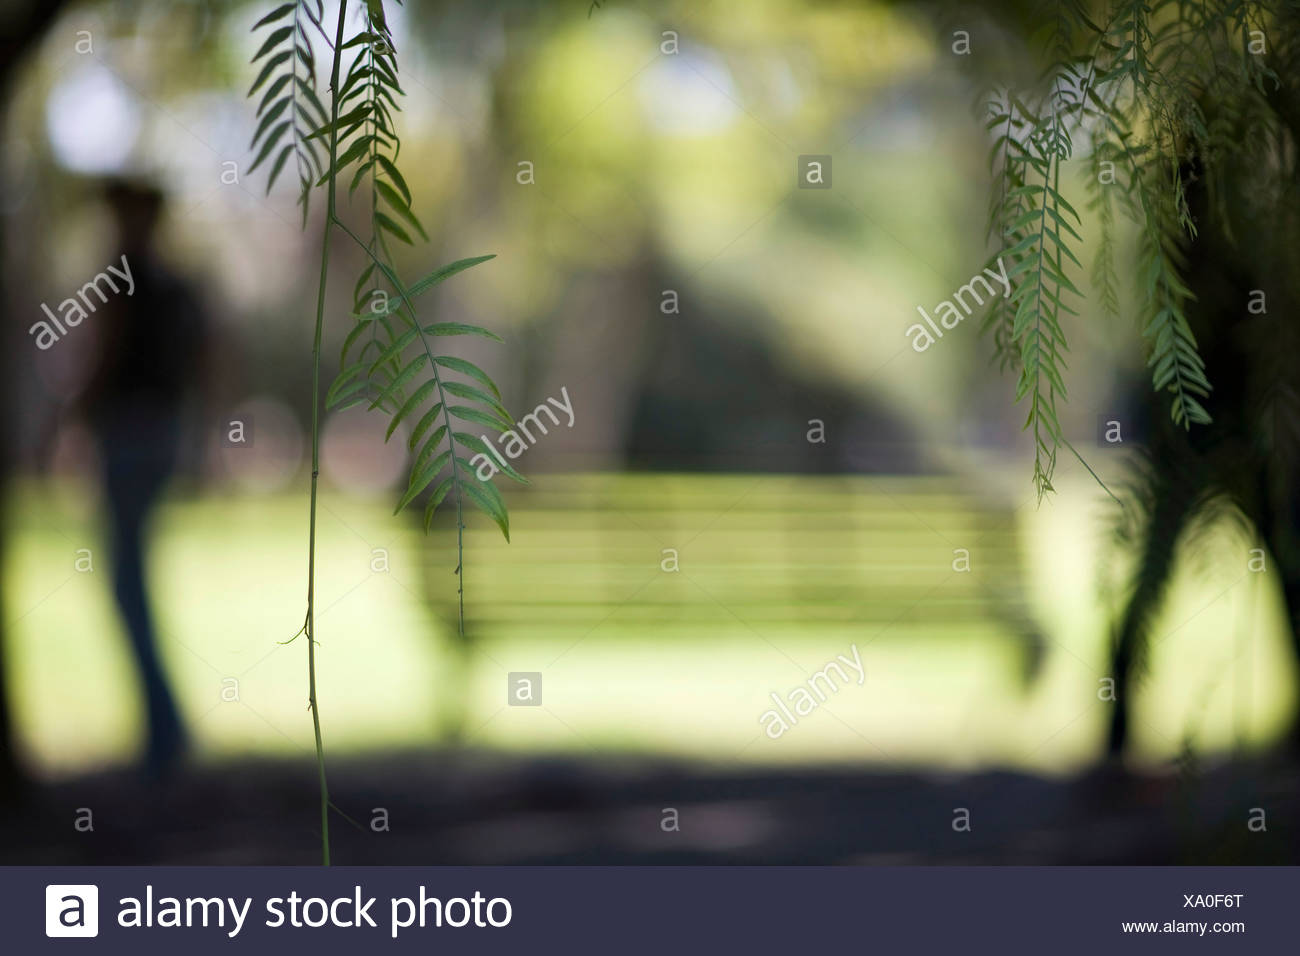 Couple separation - Stock Image